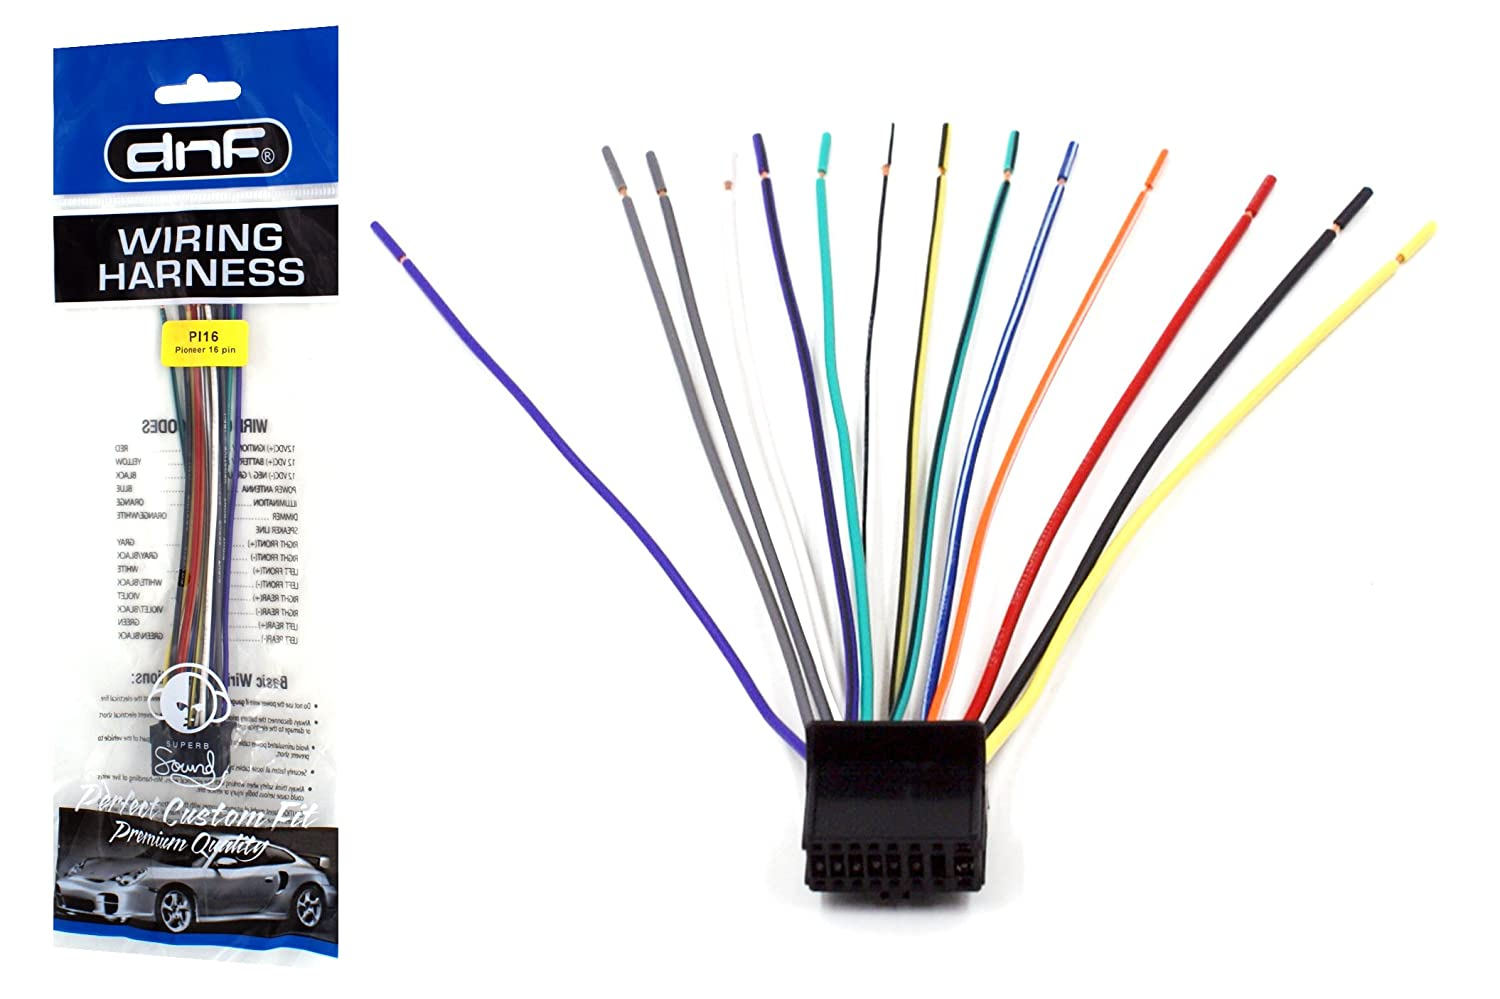 71A5xHv4deL._SL1500_ amazon com dnf pioneer wiring harness 0307 deh p4000ub deh p400ub pioneer deh p3900mp wiring diagram at bakdesigns.co